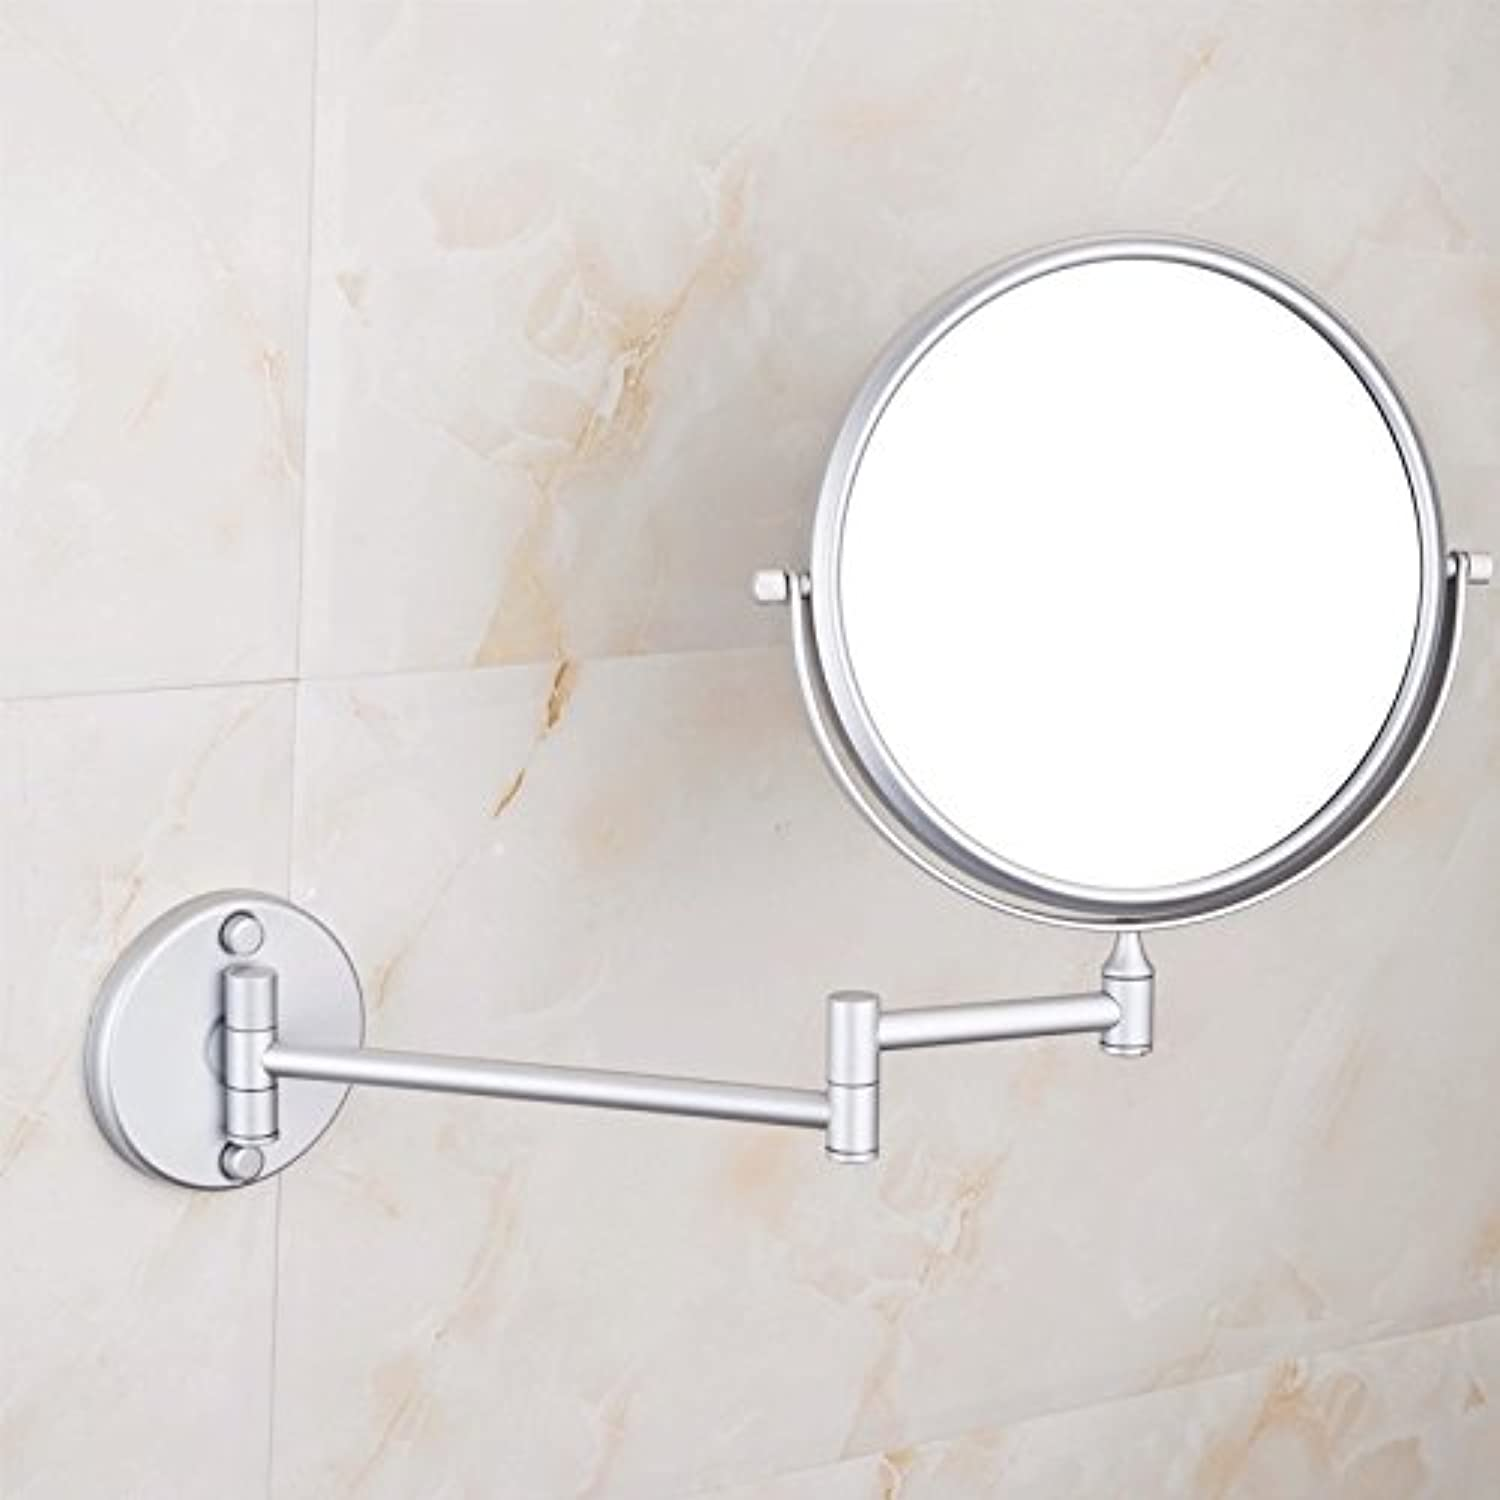 Space aluminum mirror fold mirror bathroom mirror wall mount makeup mirror 8-inch